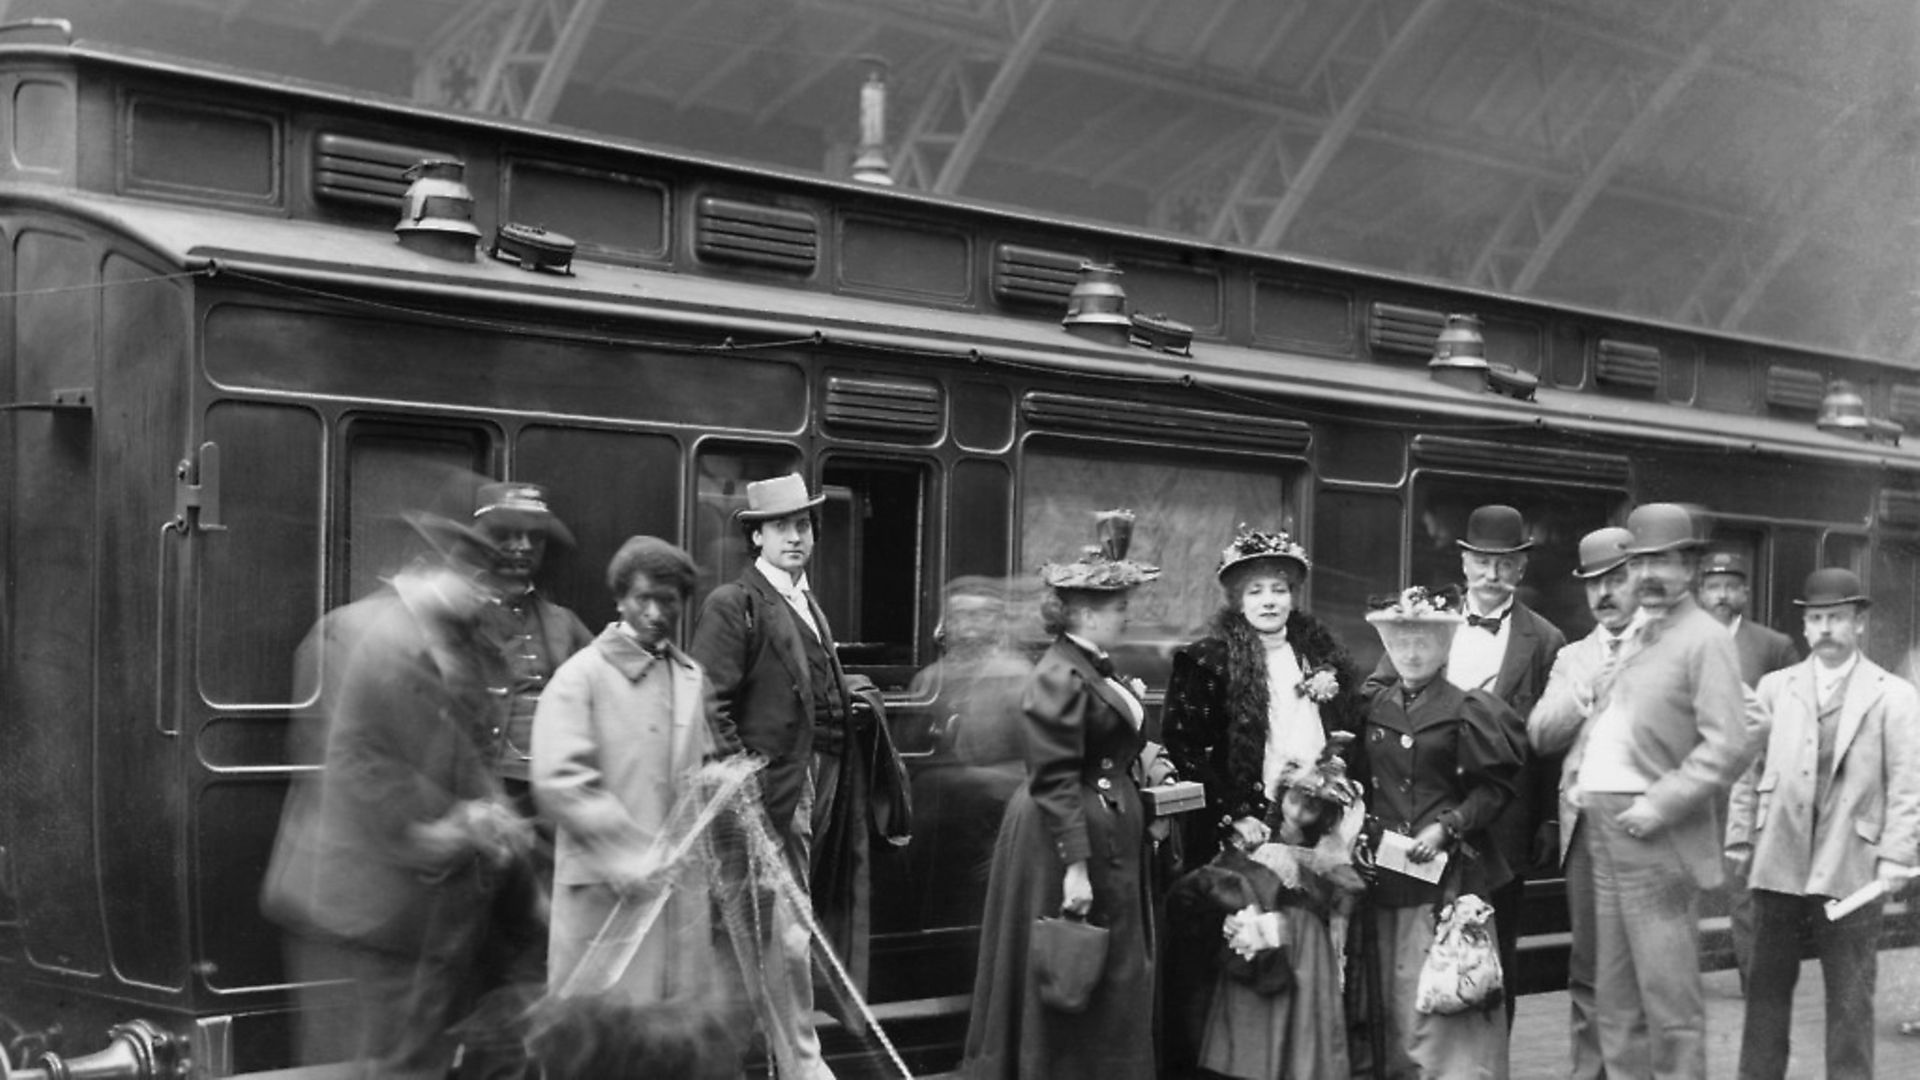 Sarah Bernhardt and her entourage arriving at St Pancras station, in London, 28 July 1894.. Photo: SSPL/Getty Images - Credit: SSPL via Getty Images